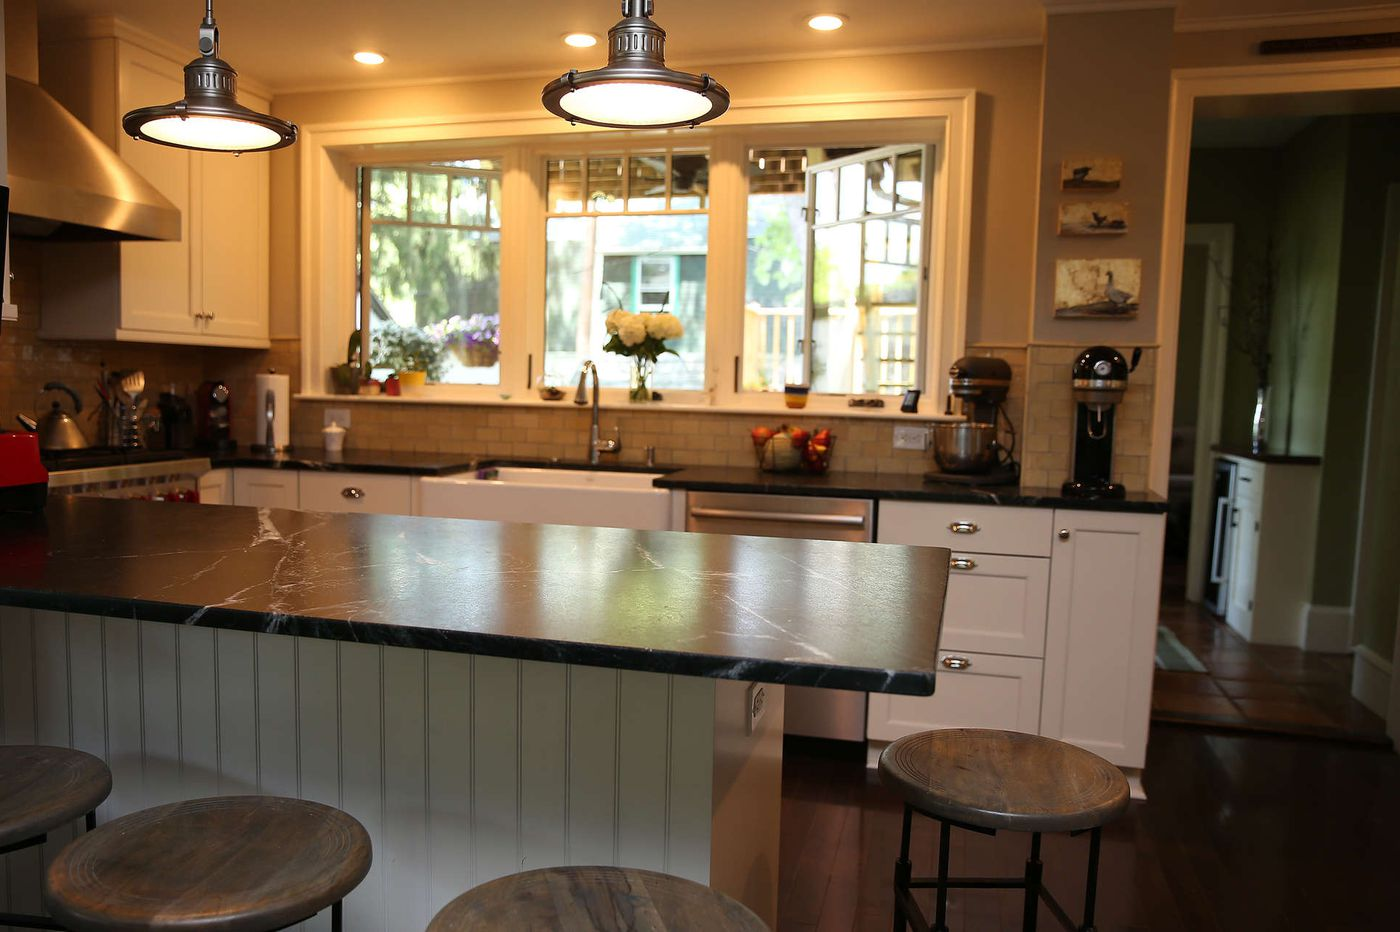 Here's how to pick the best counter for your kitchen